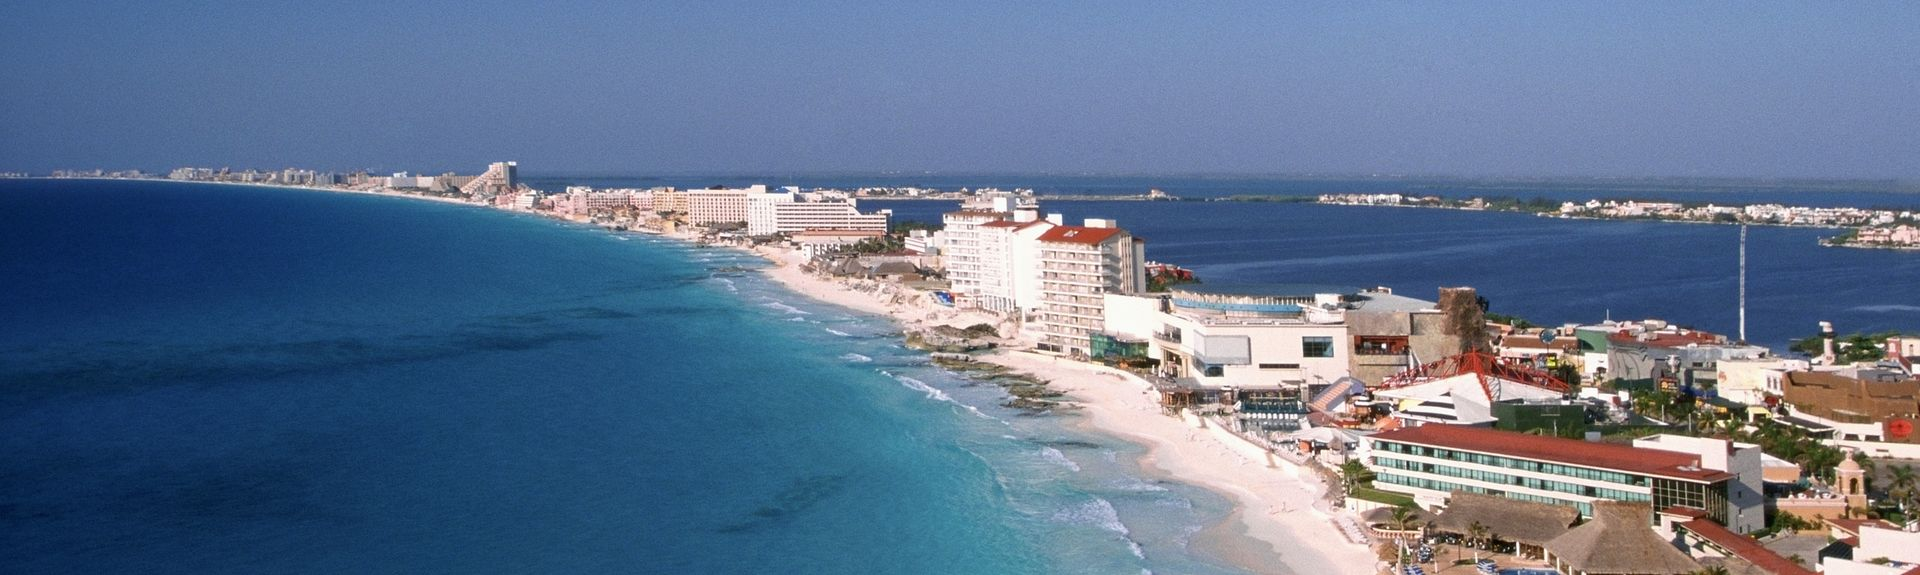 Cancún, Quintana Roo, Mexique